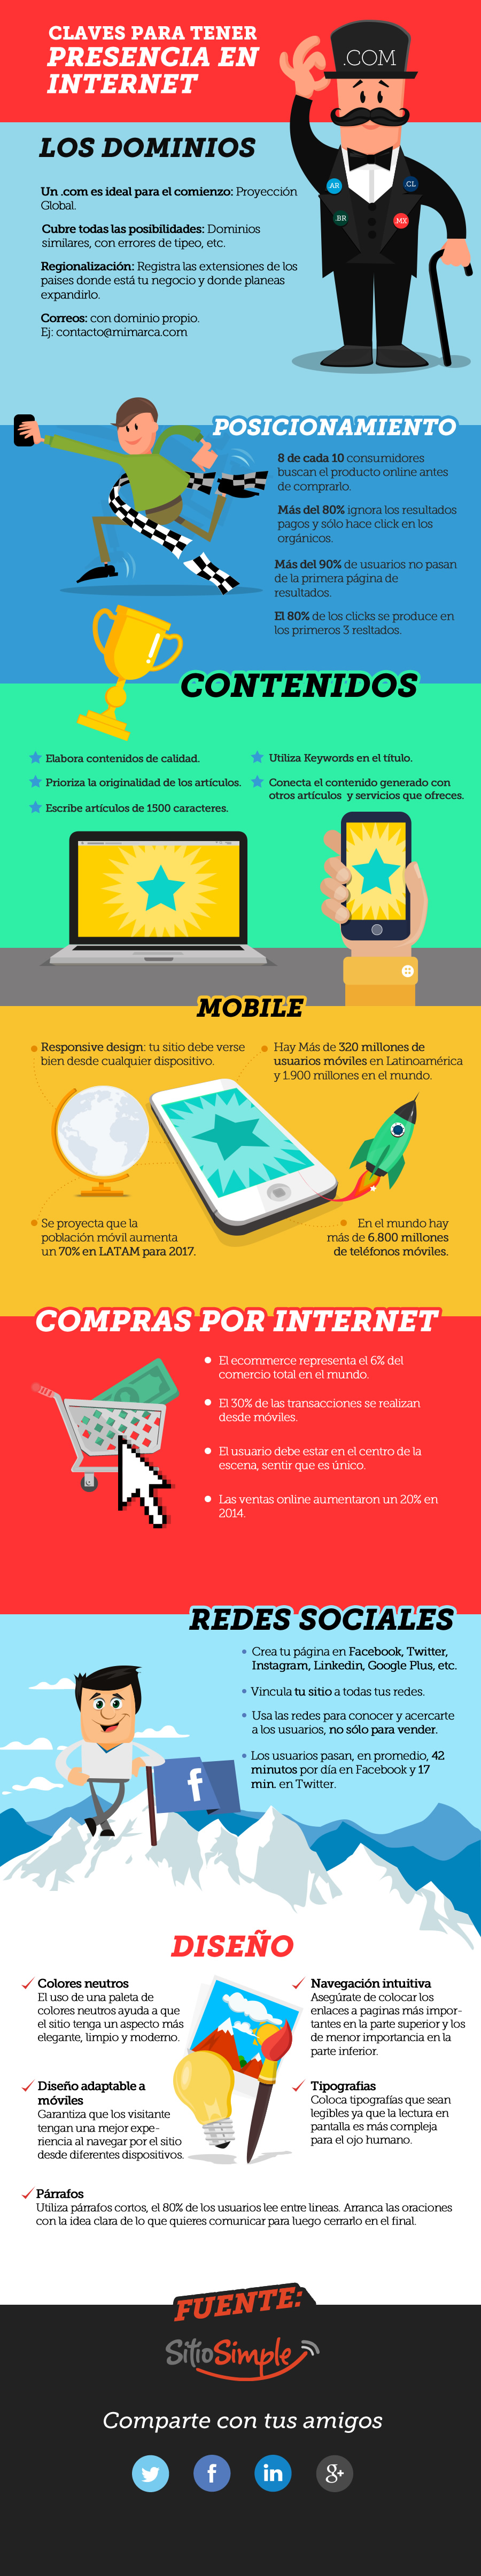 infografia_tendencias_emarketing-2